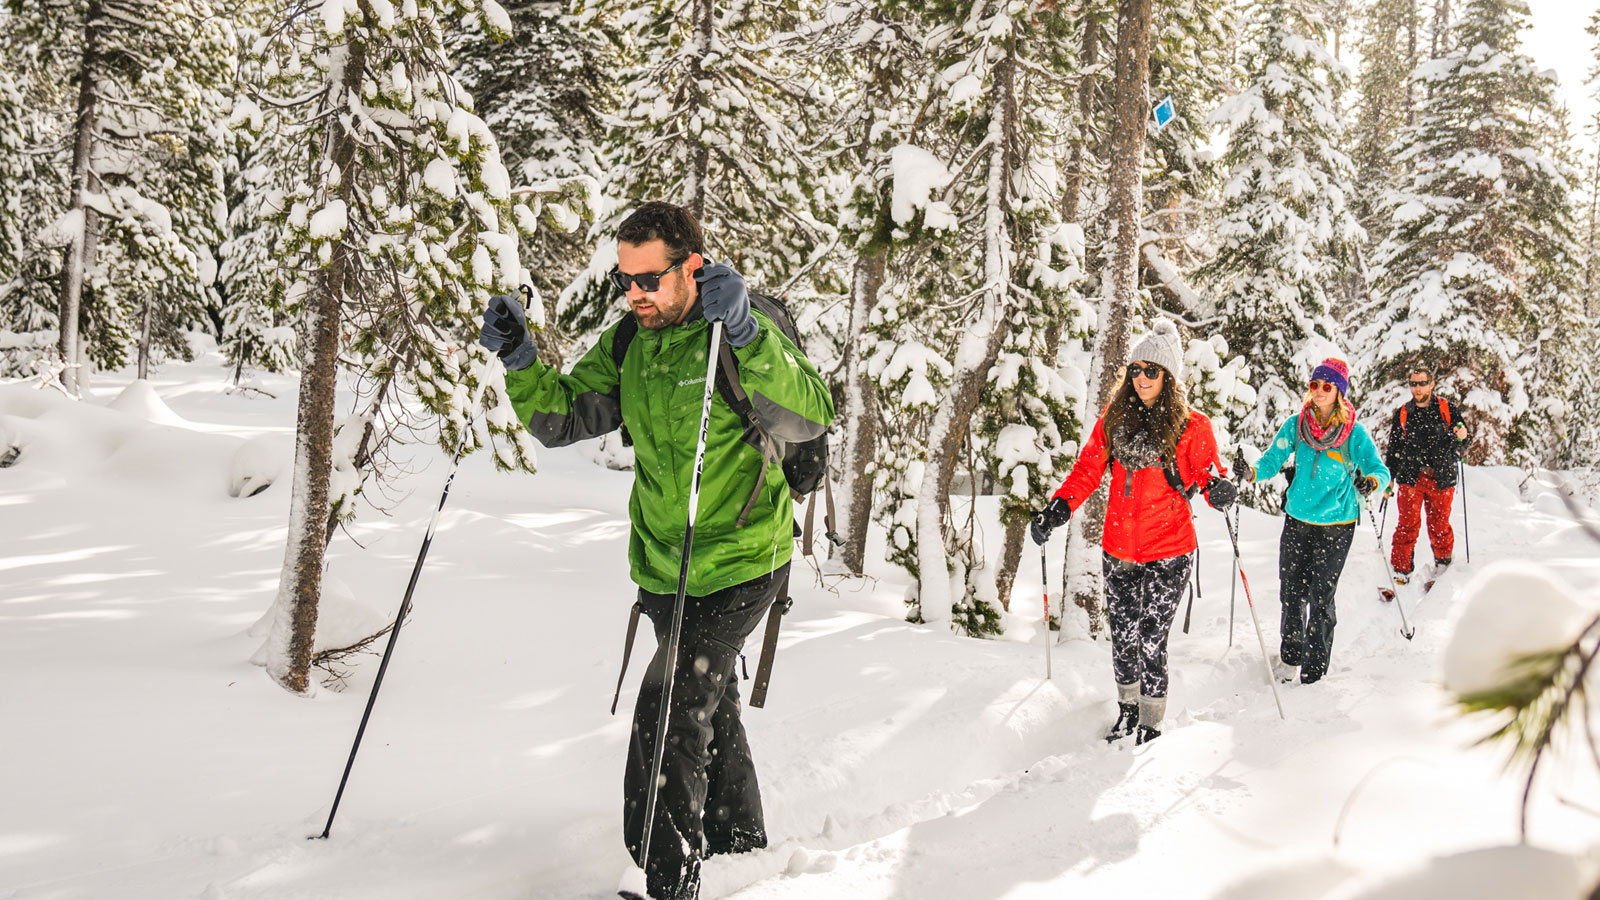 Cross-country skiing in Bend, Oregon